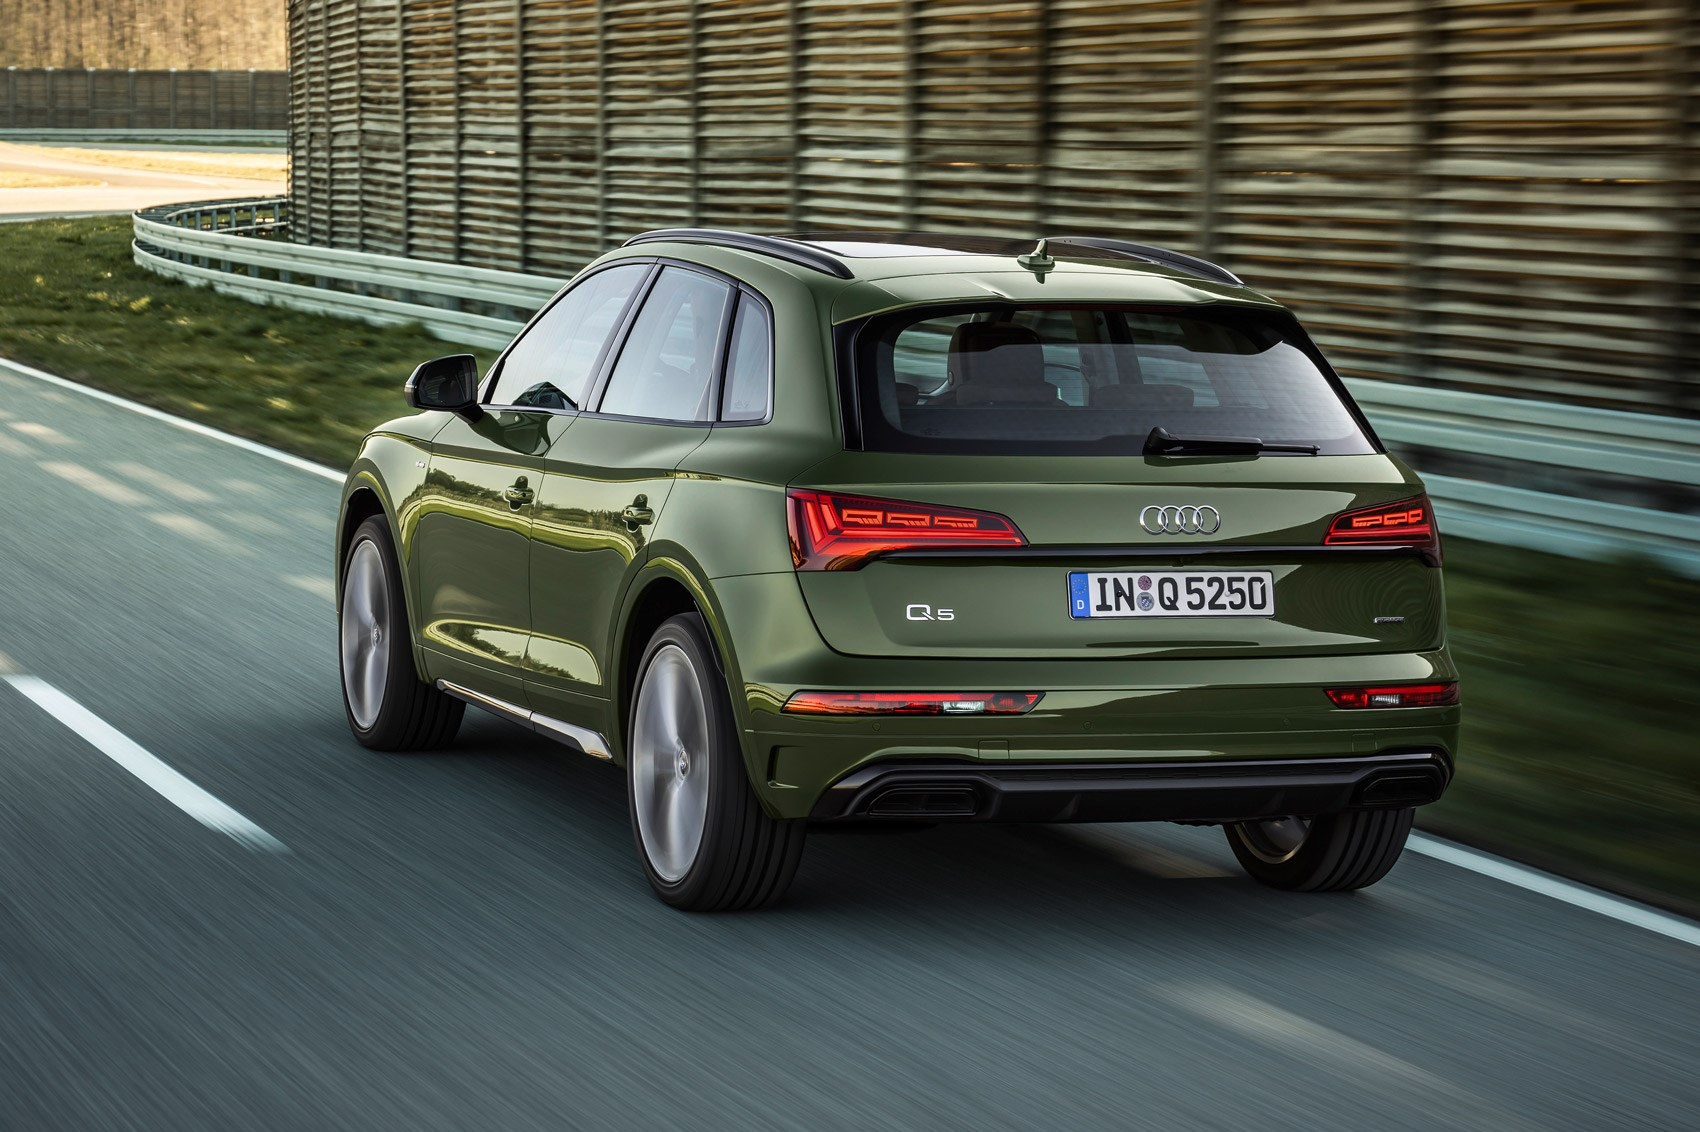 Audi Q5 - Now in pictures